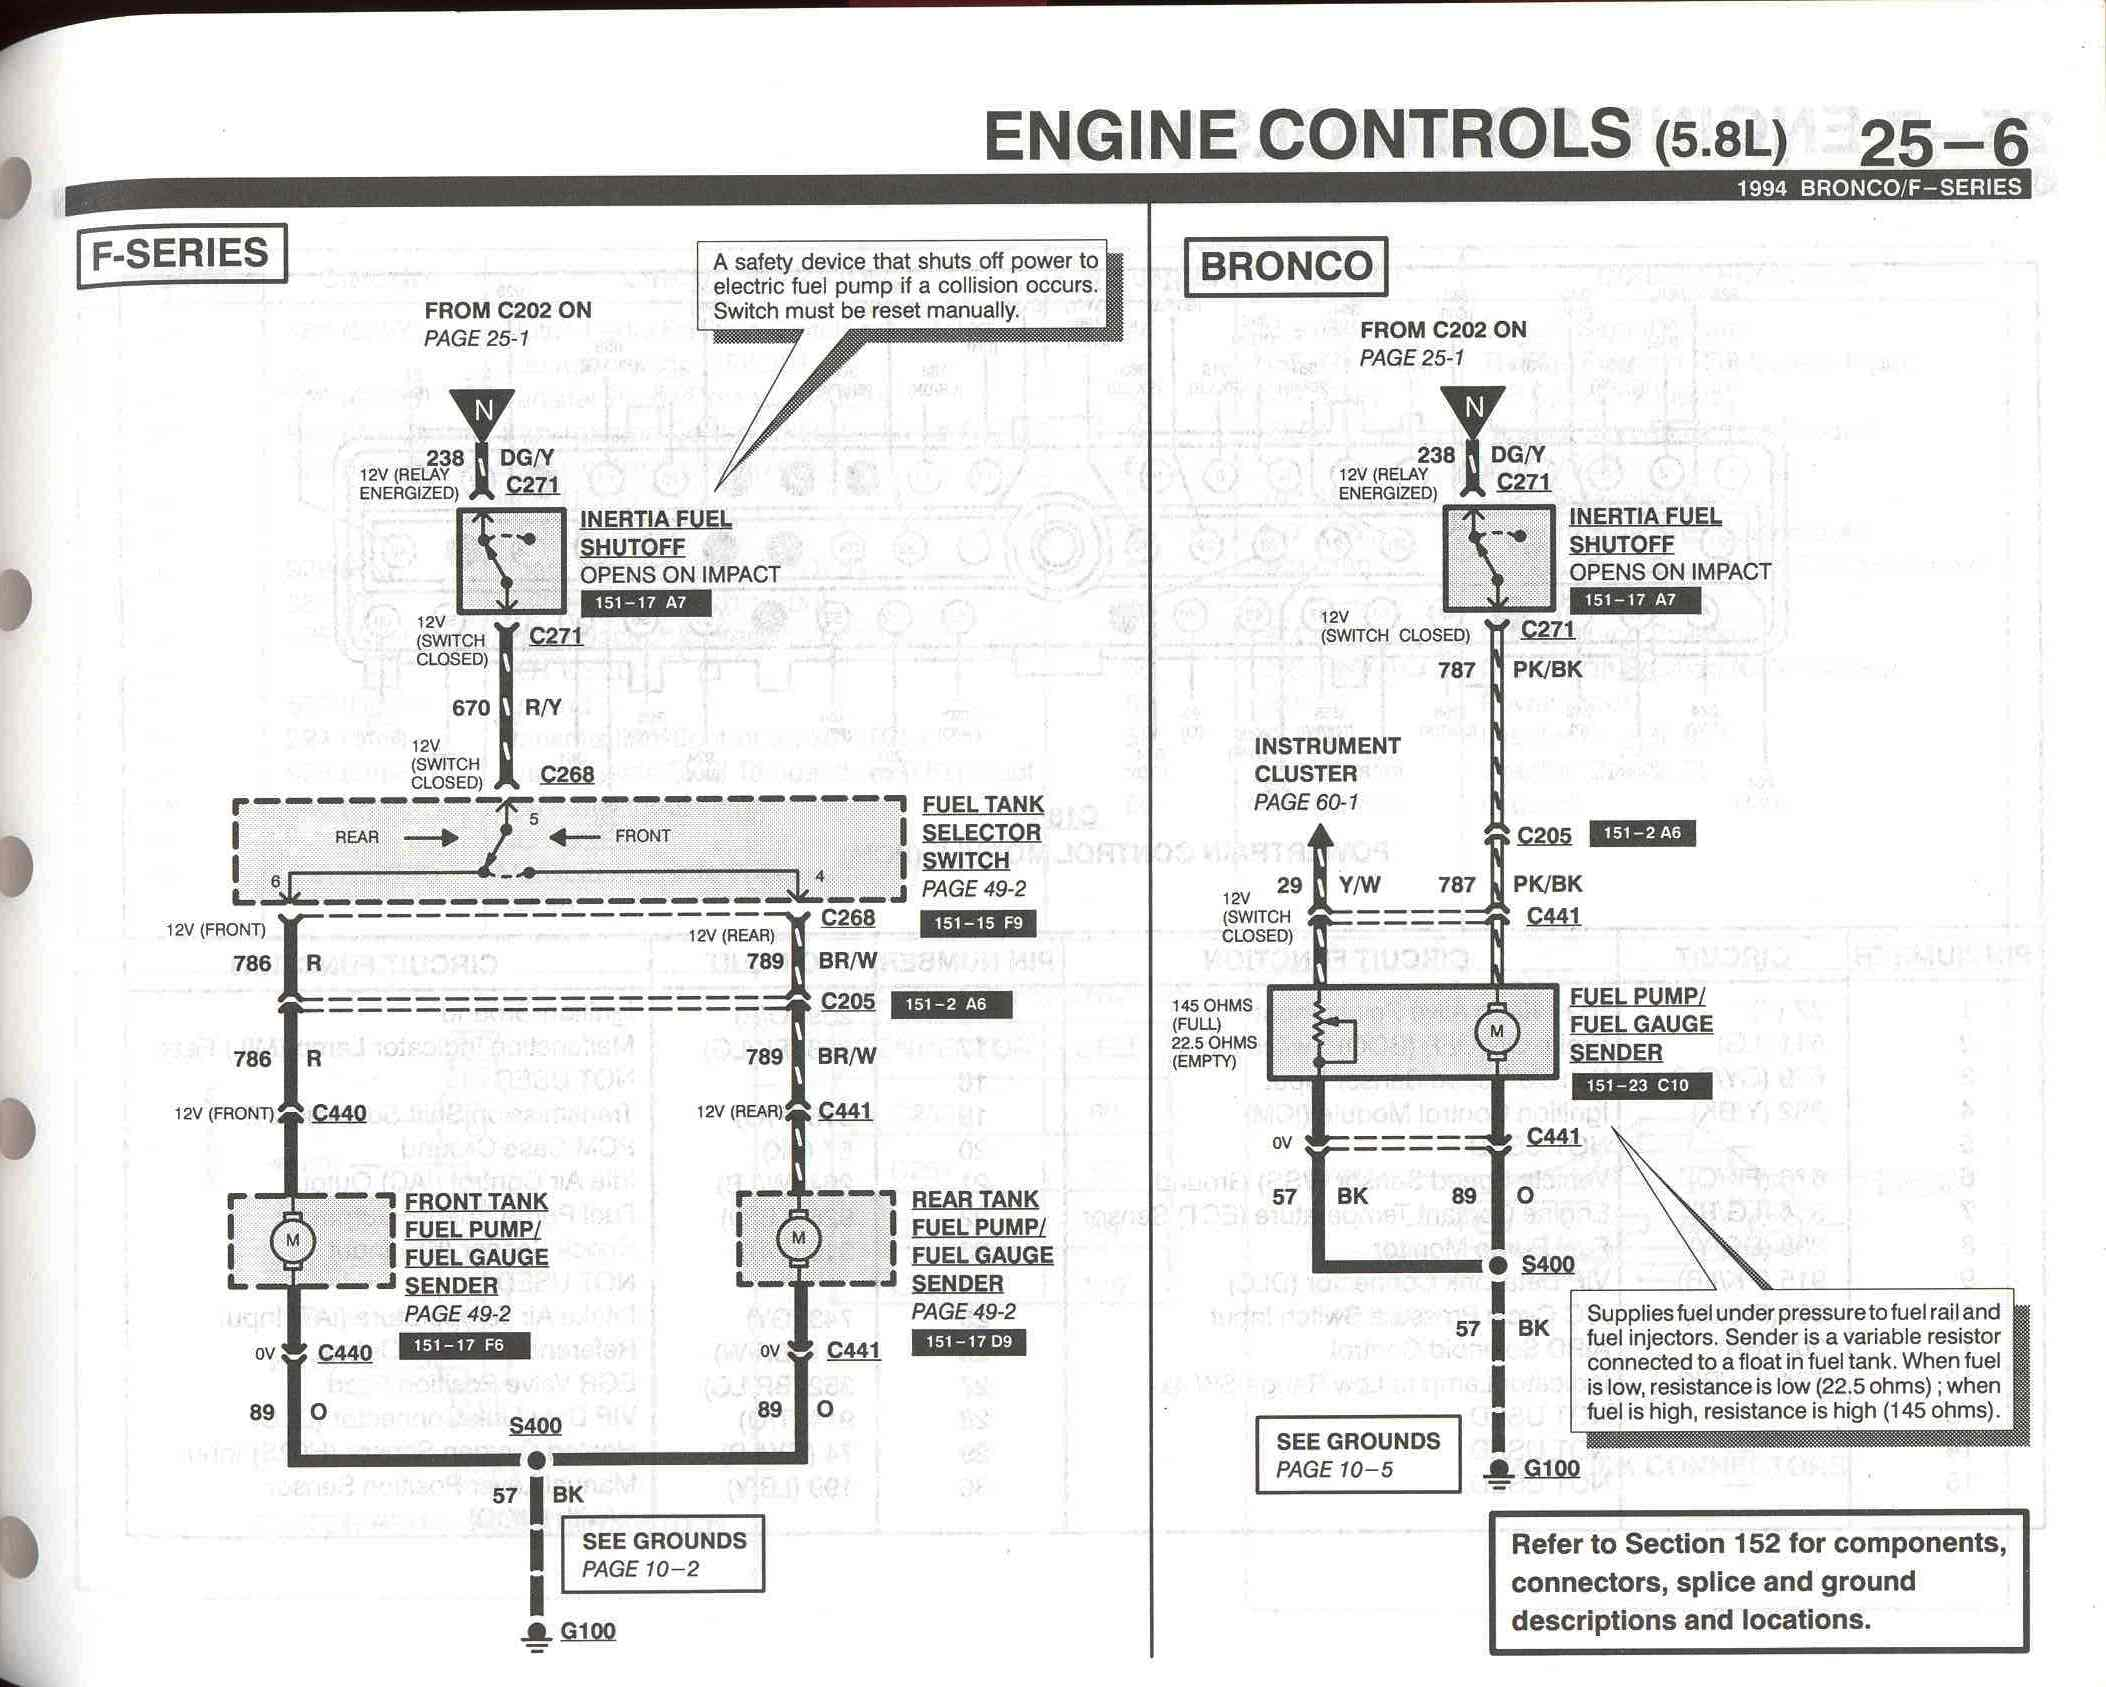 94 f150 fuel wiring diagram 96 f150 front fuel guage stoped working | fordforumsonline.com 94 f150 stereo wiring diagram #3